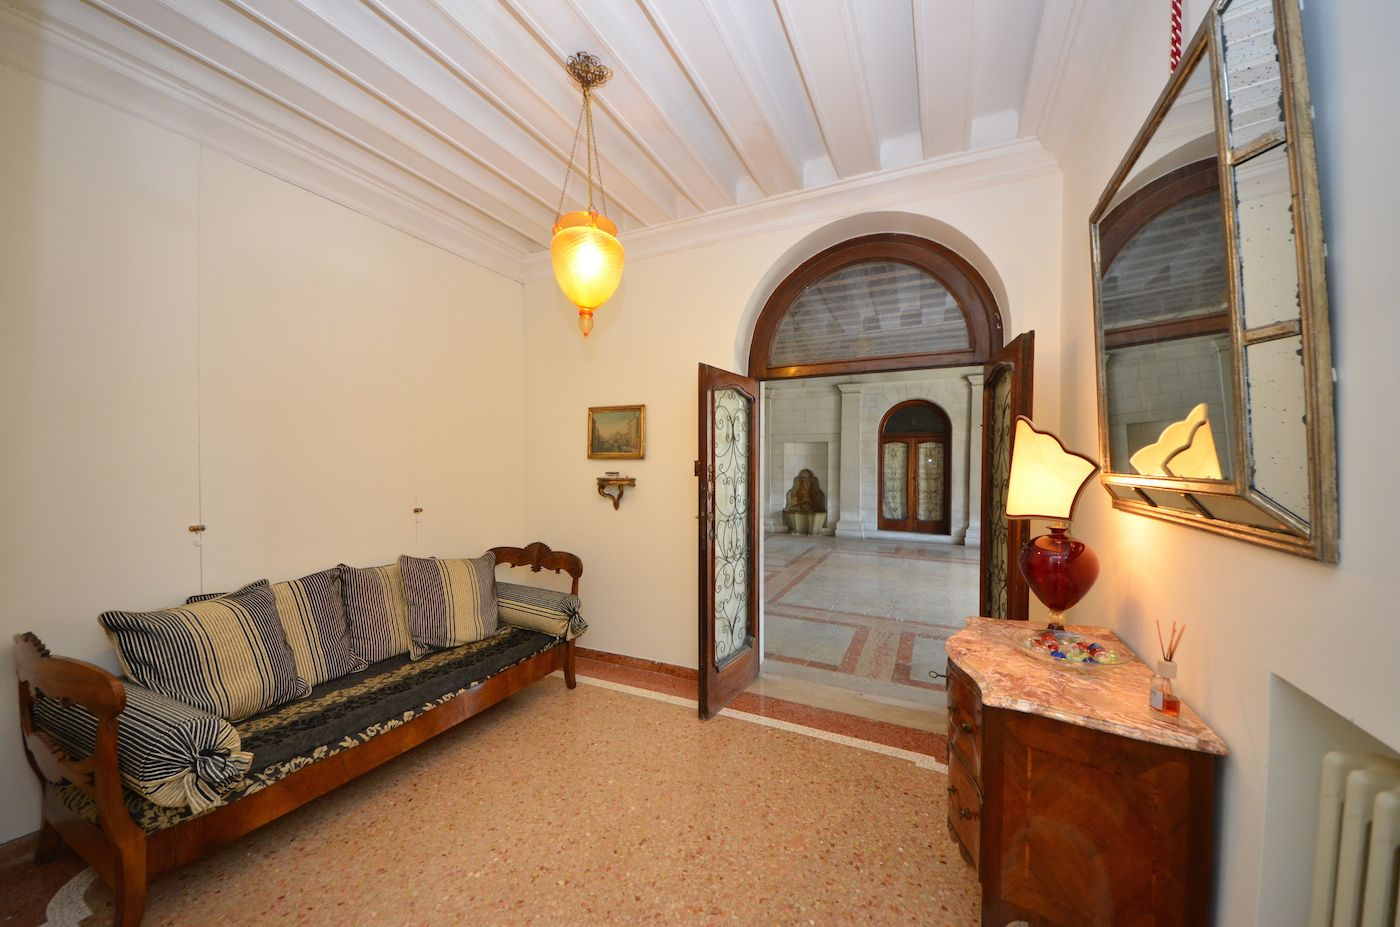 entrance room of the Dogaressa apartment